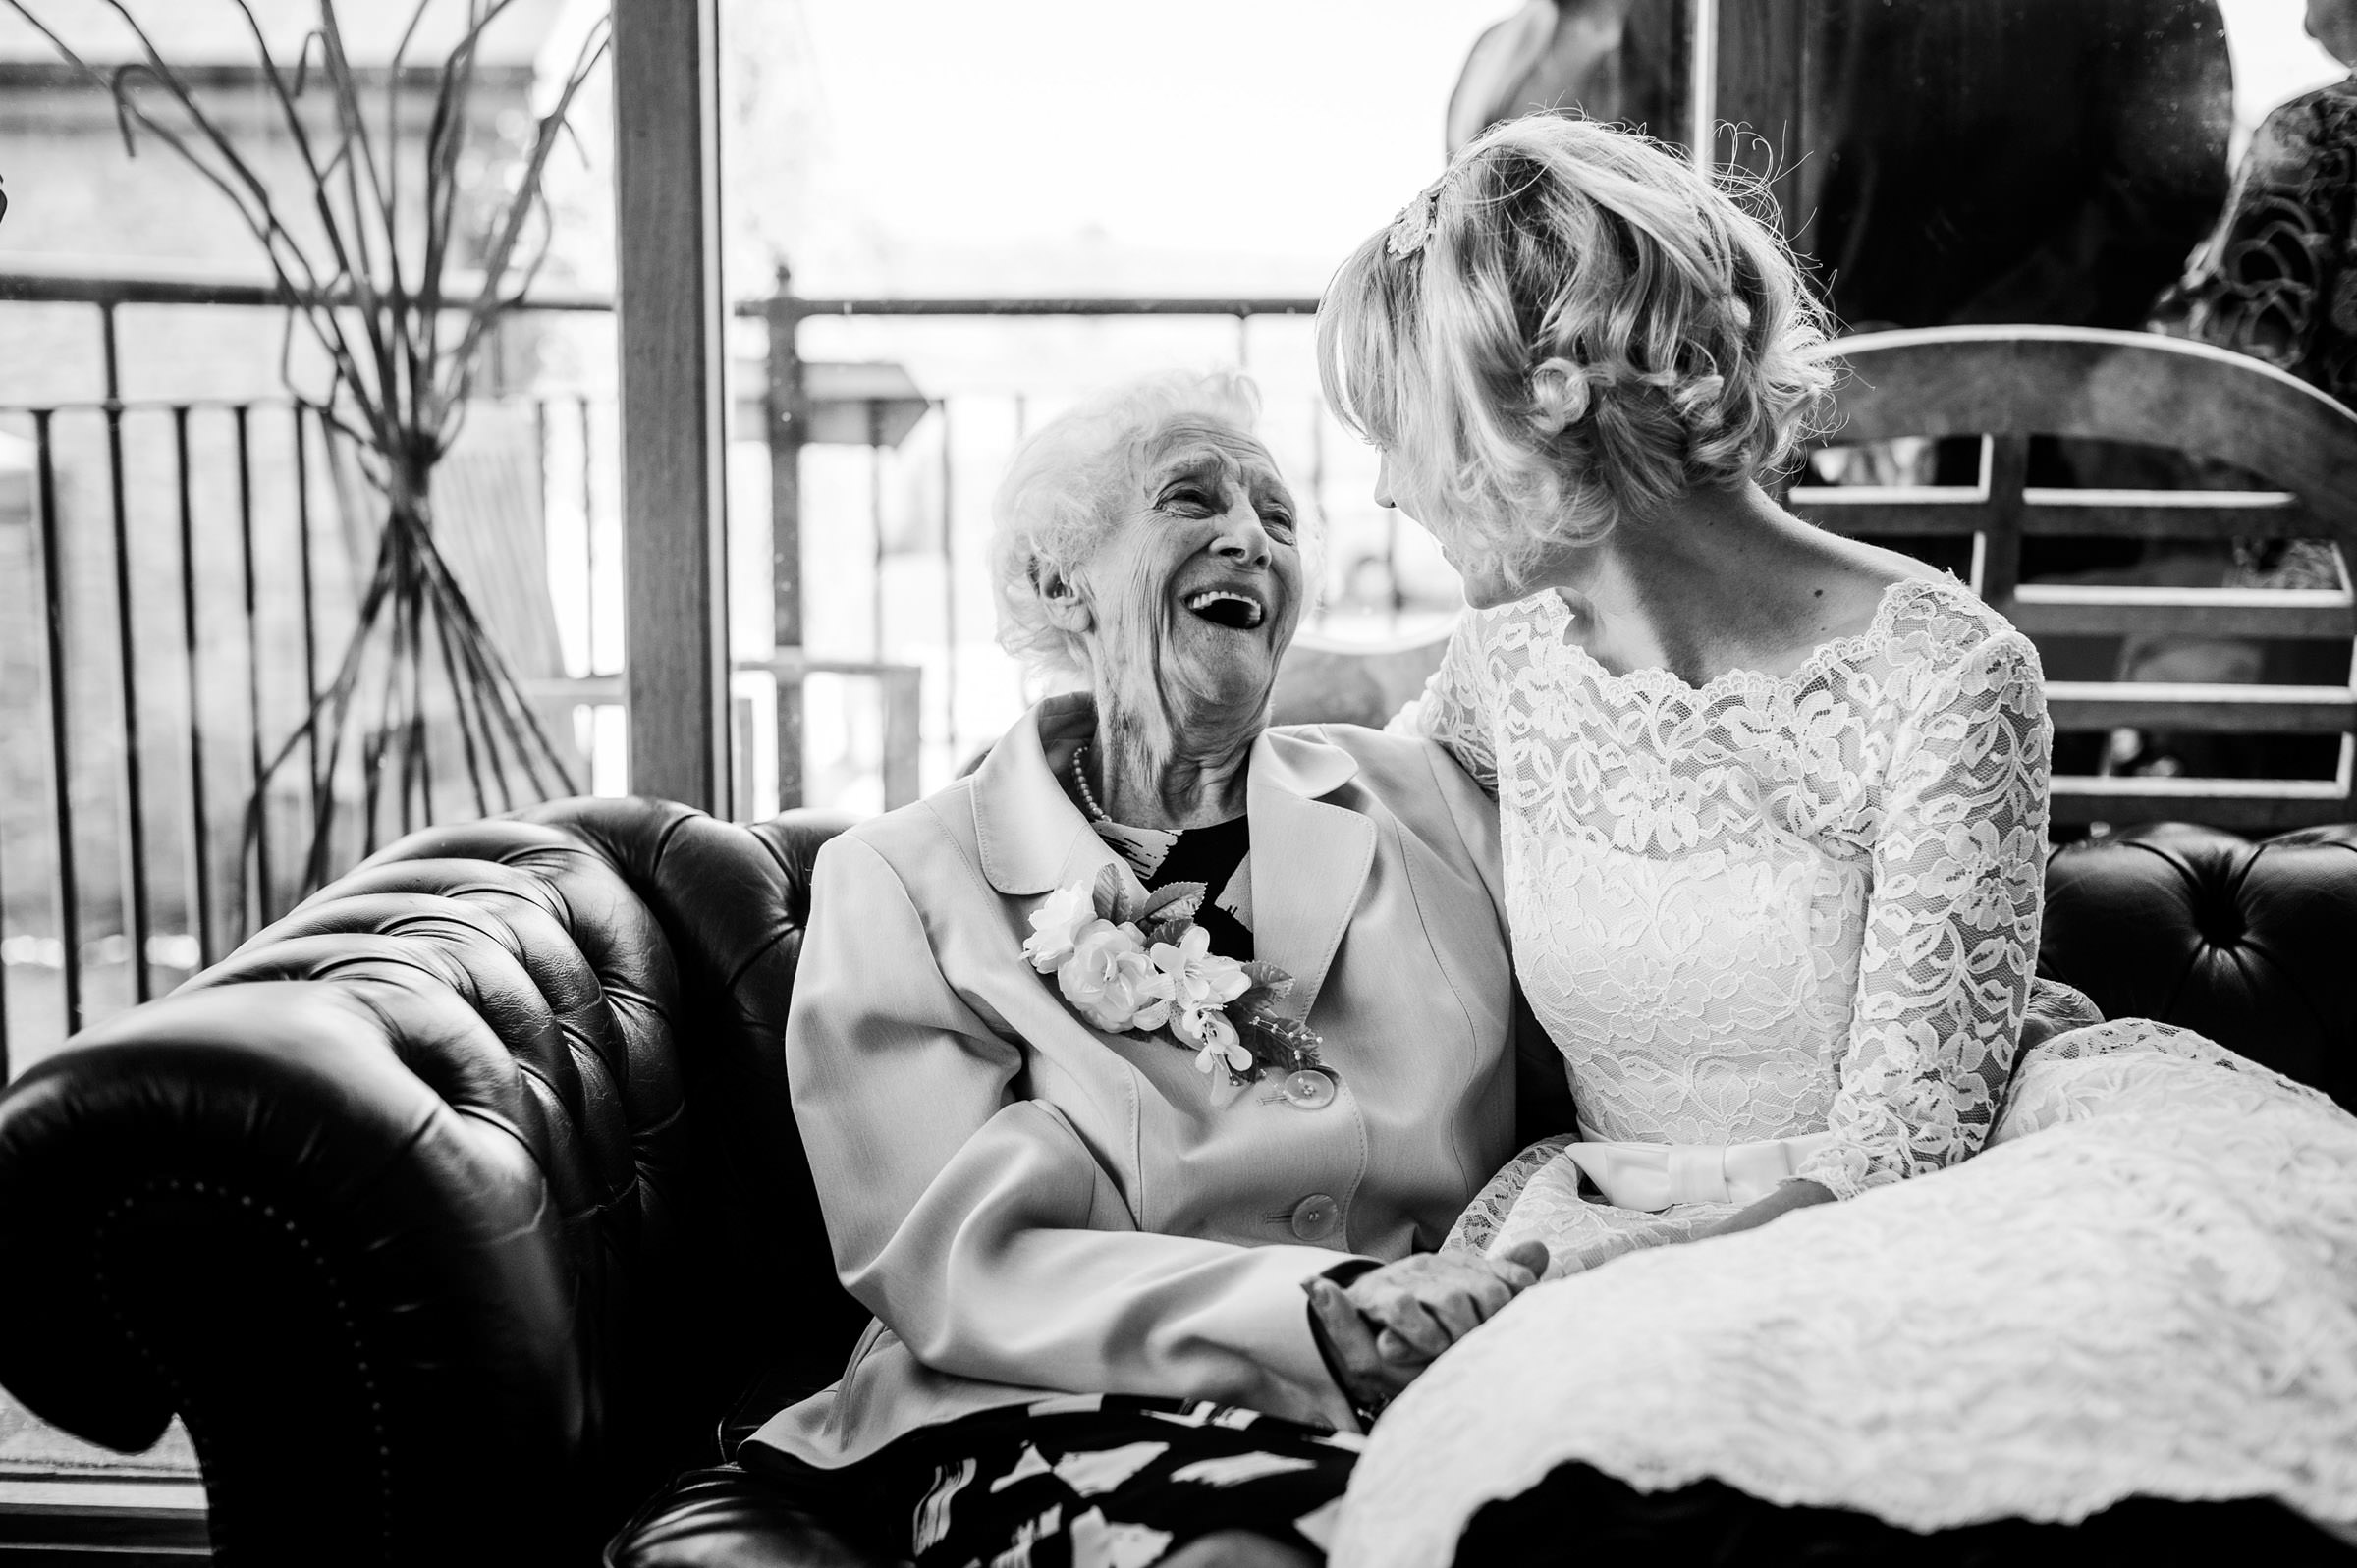 Reportage Wedding Photography South Wales 040.jpg